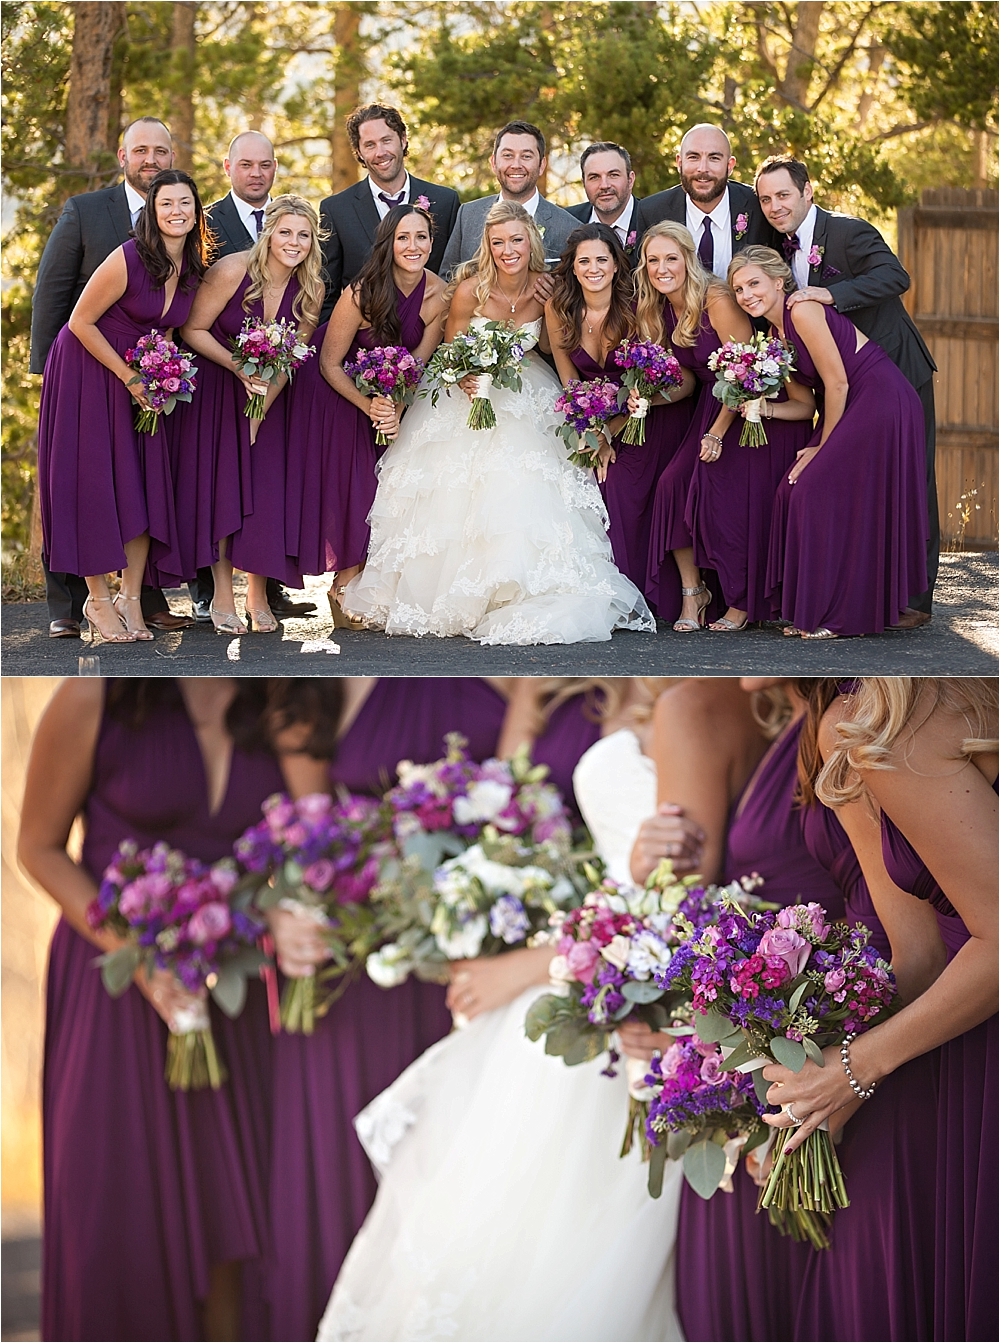 Jaclyn and Ryan | The Lodge at Breckenridge Wedding_0027.jpg